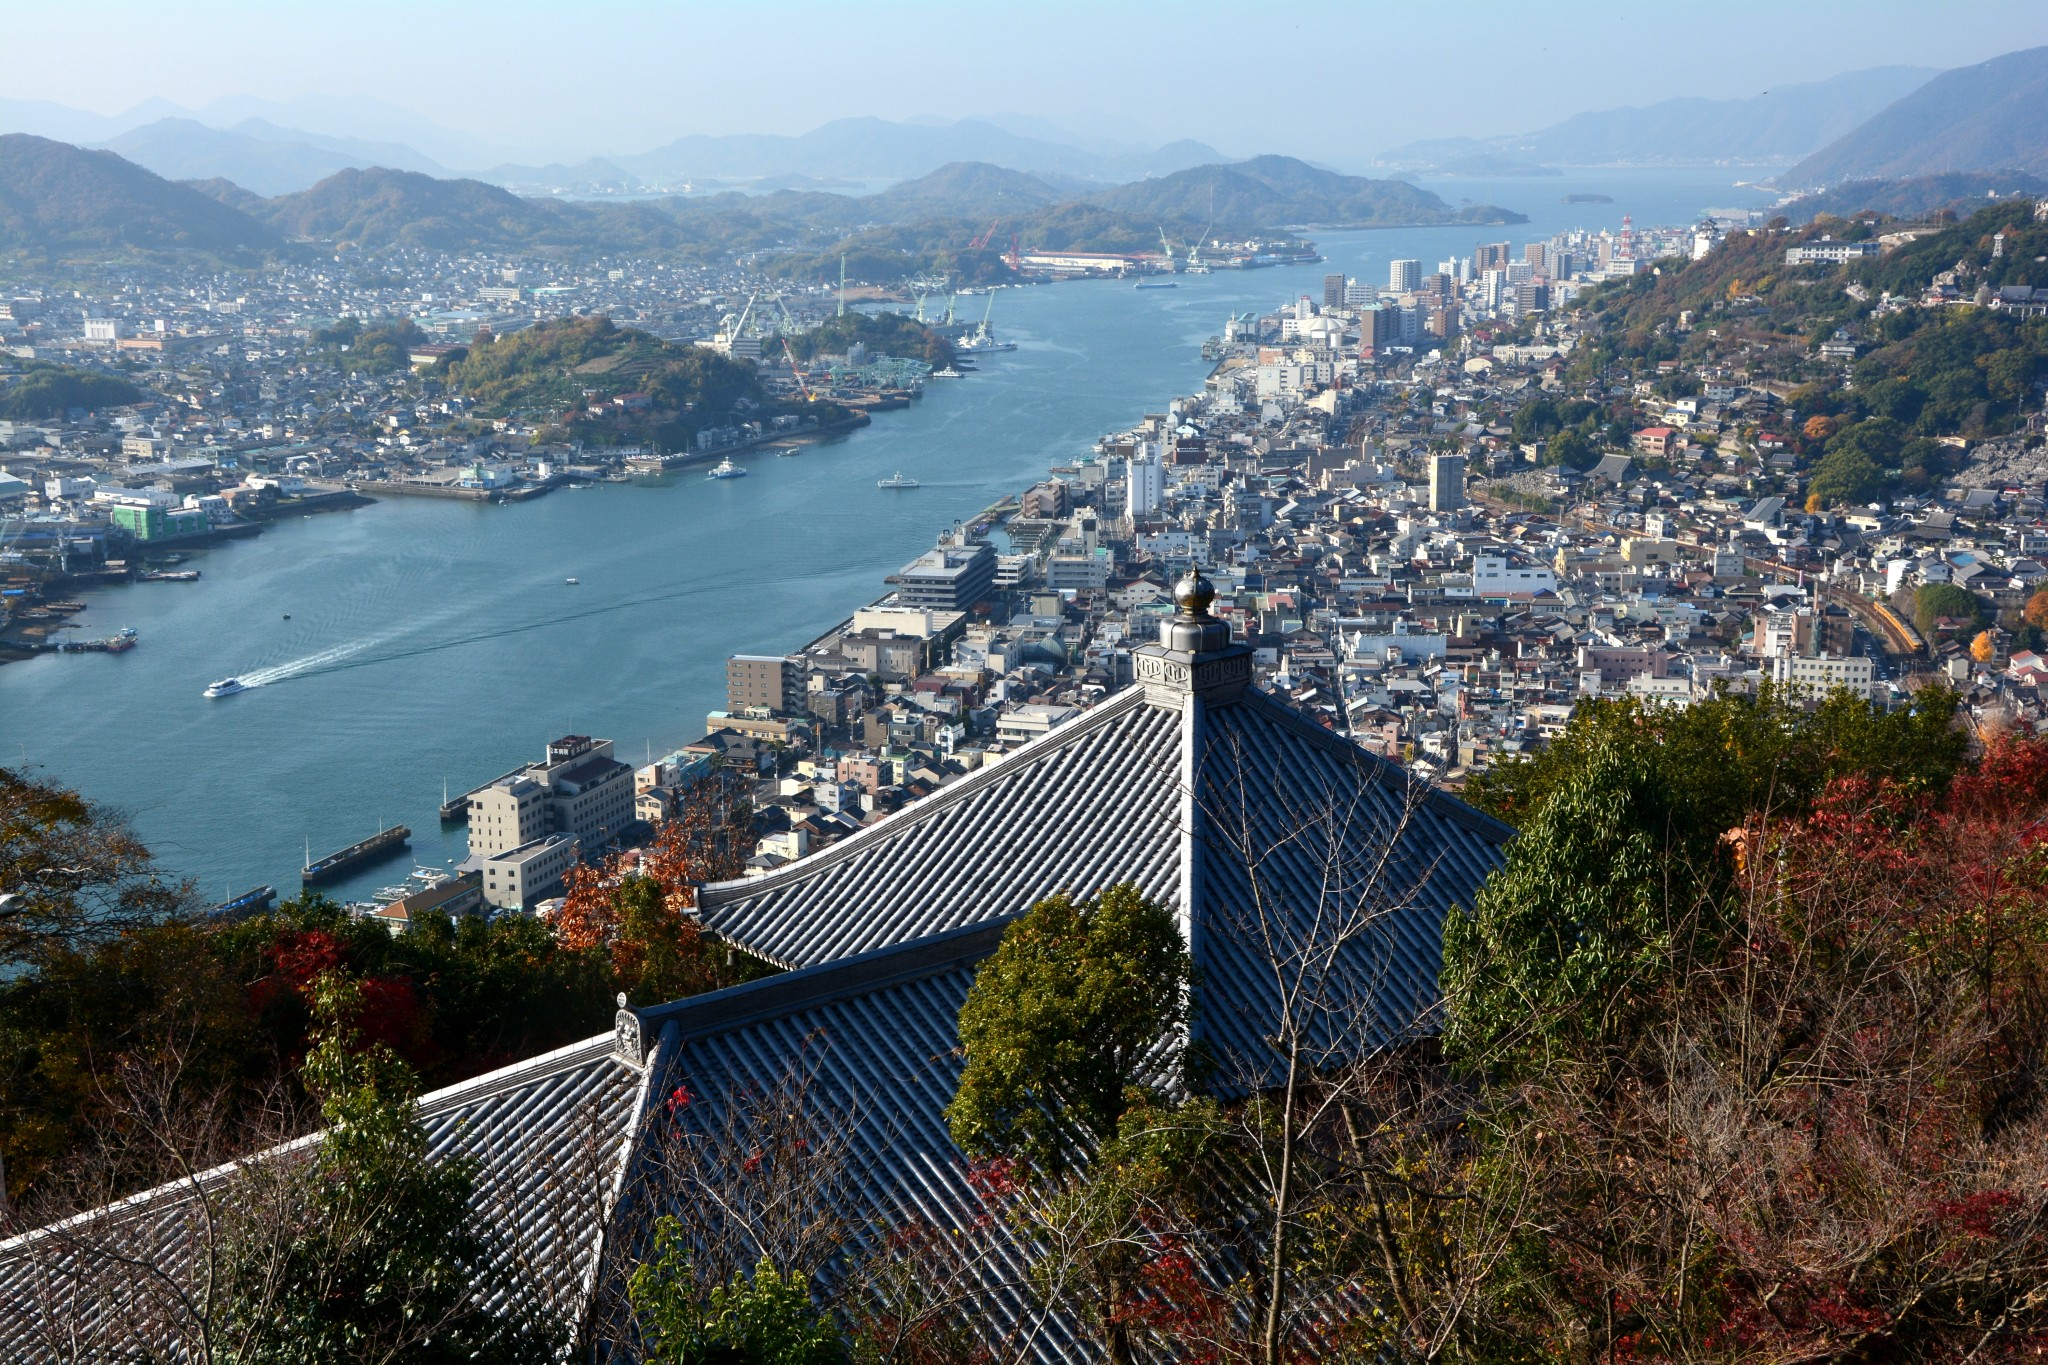 arial view of Onomichi Hiroshima Japan